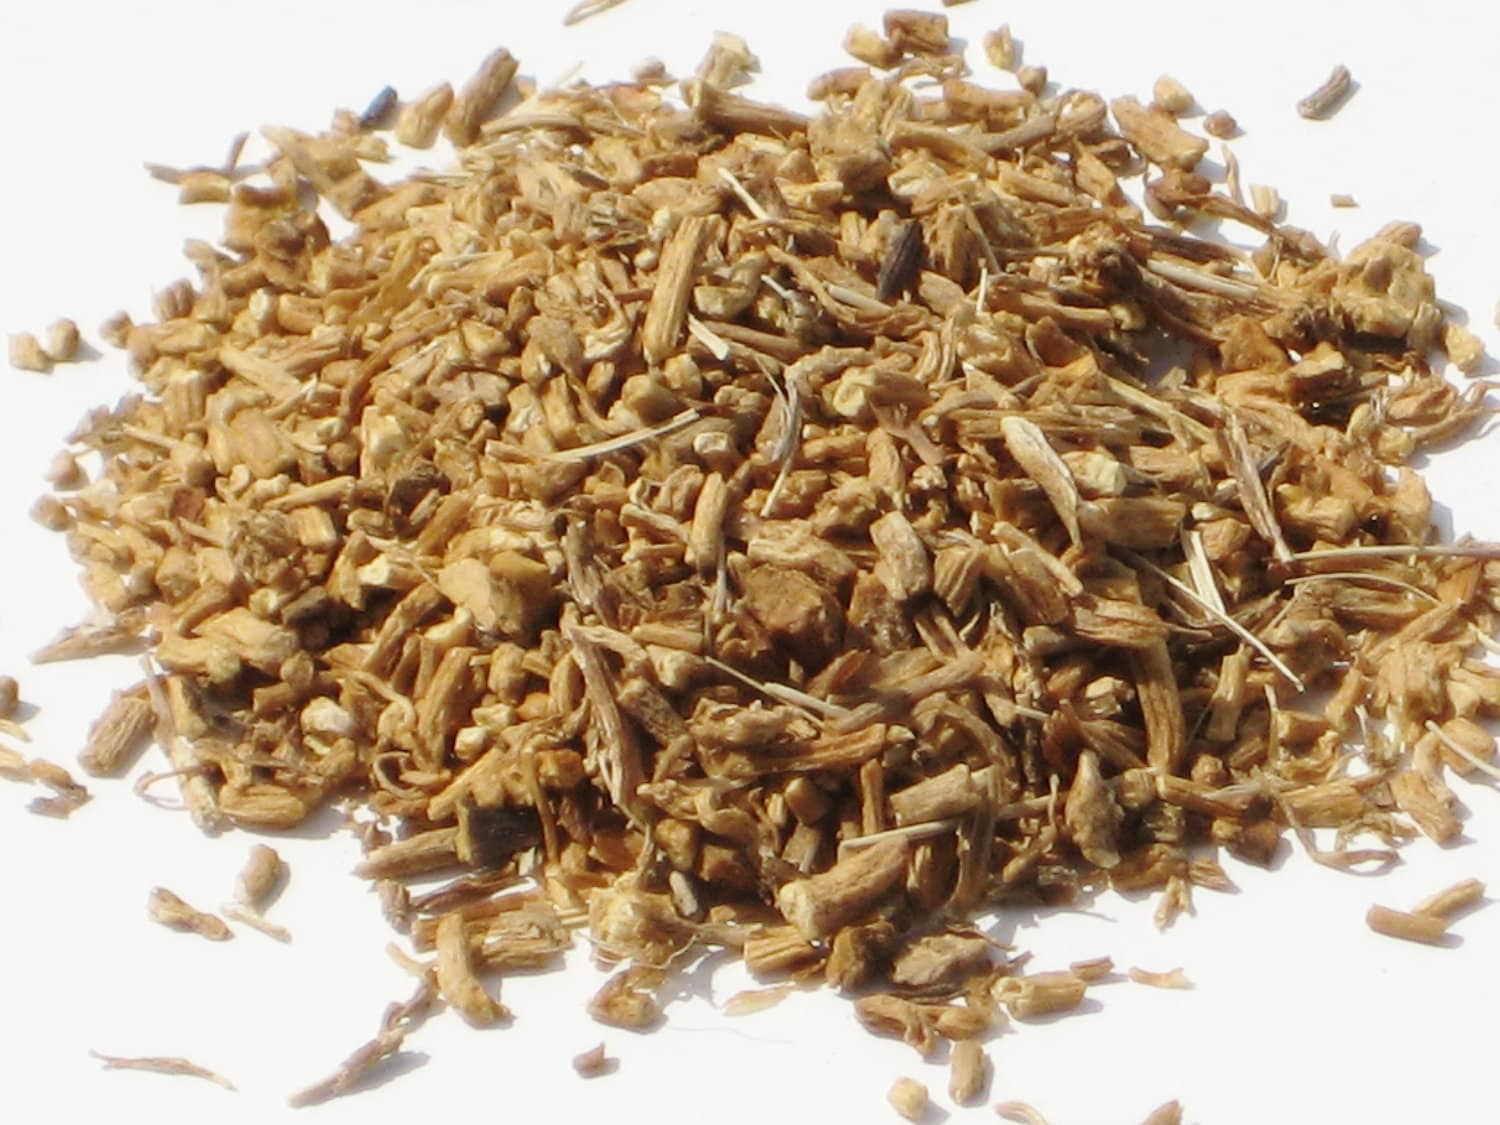 Natural valerian root